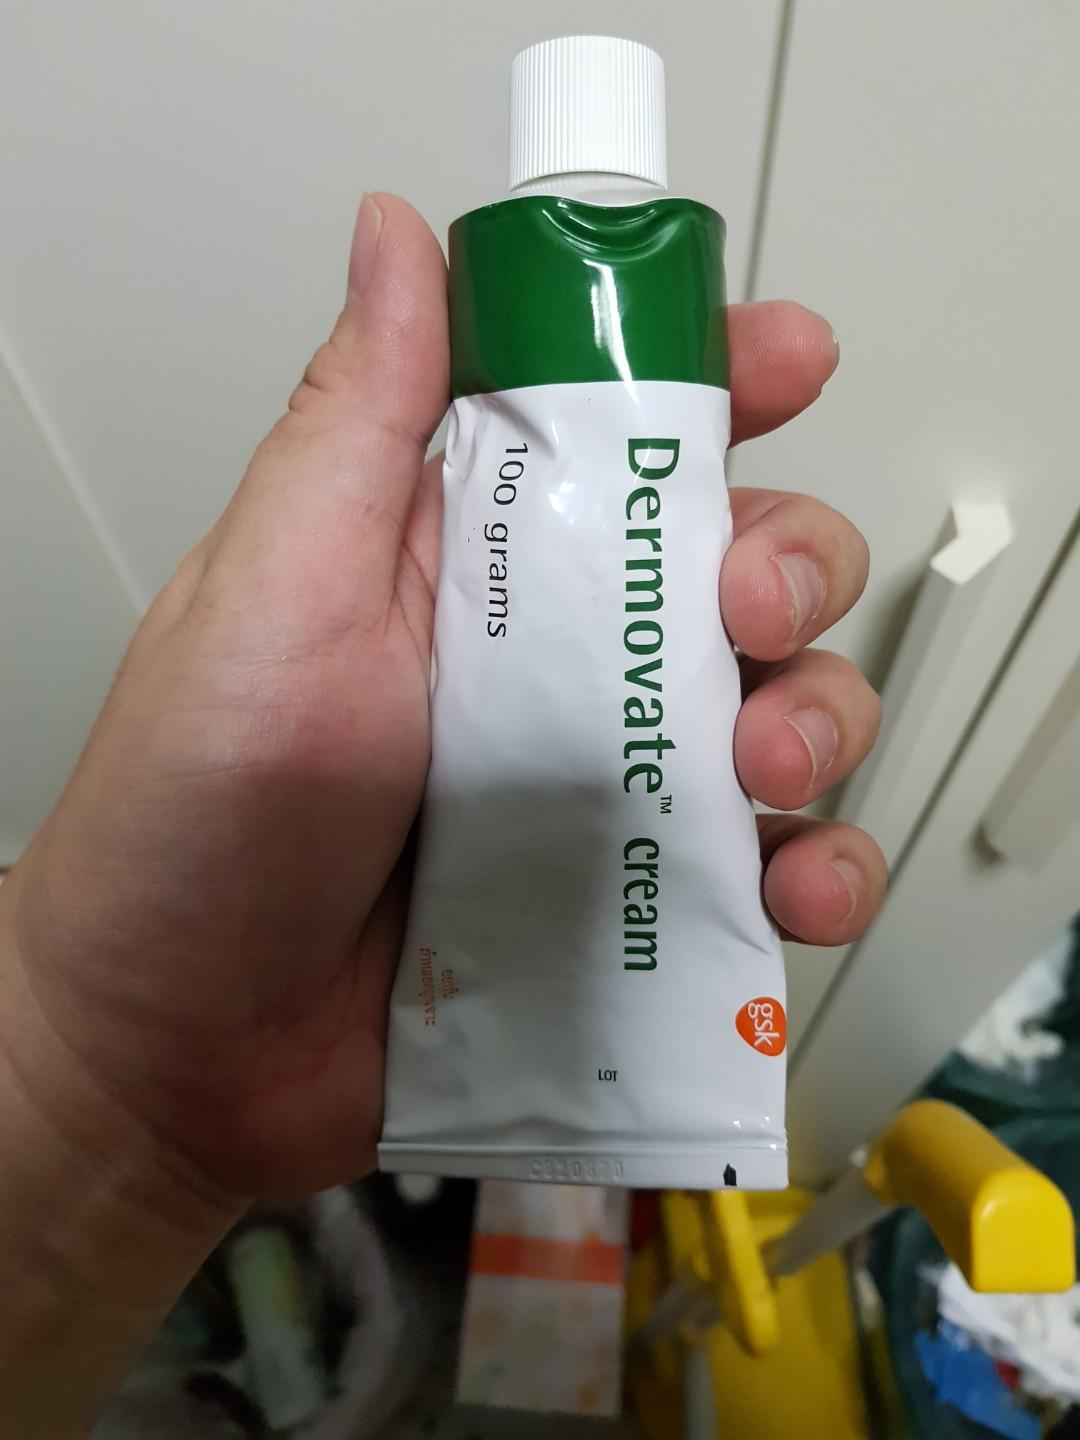 Dermovate ointment igg side effects